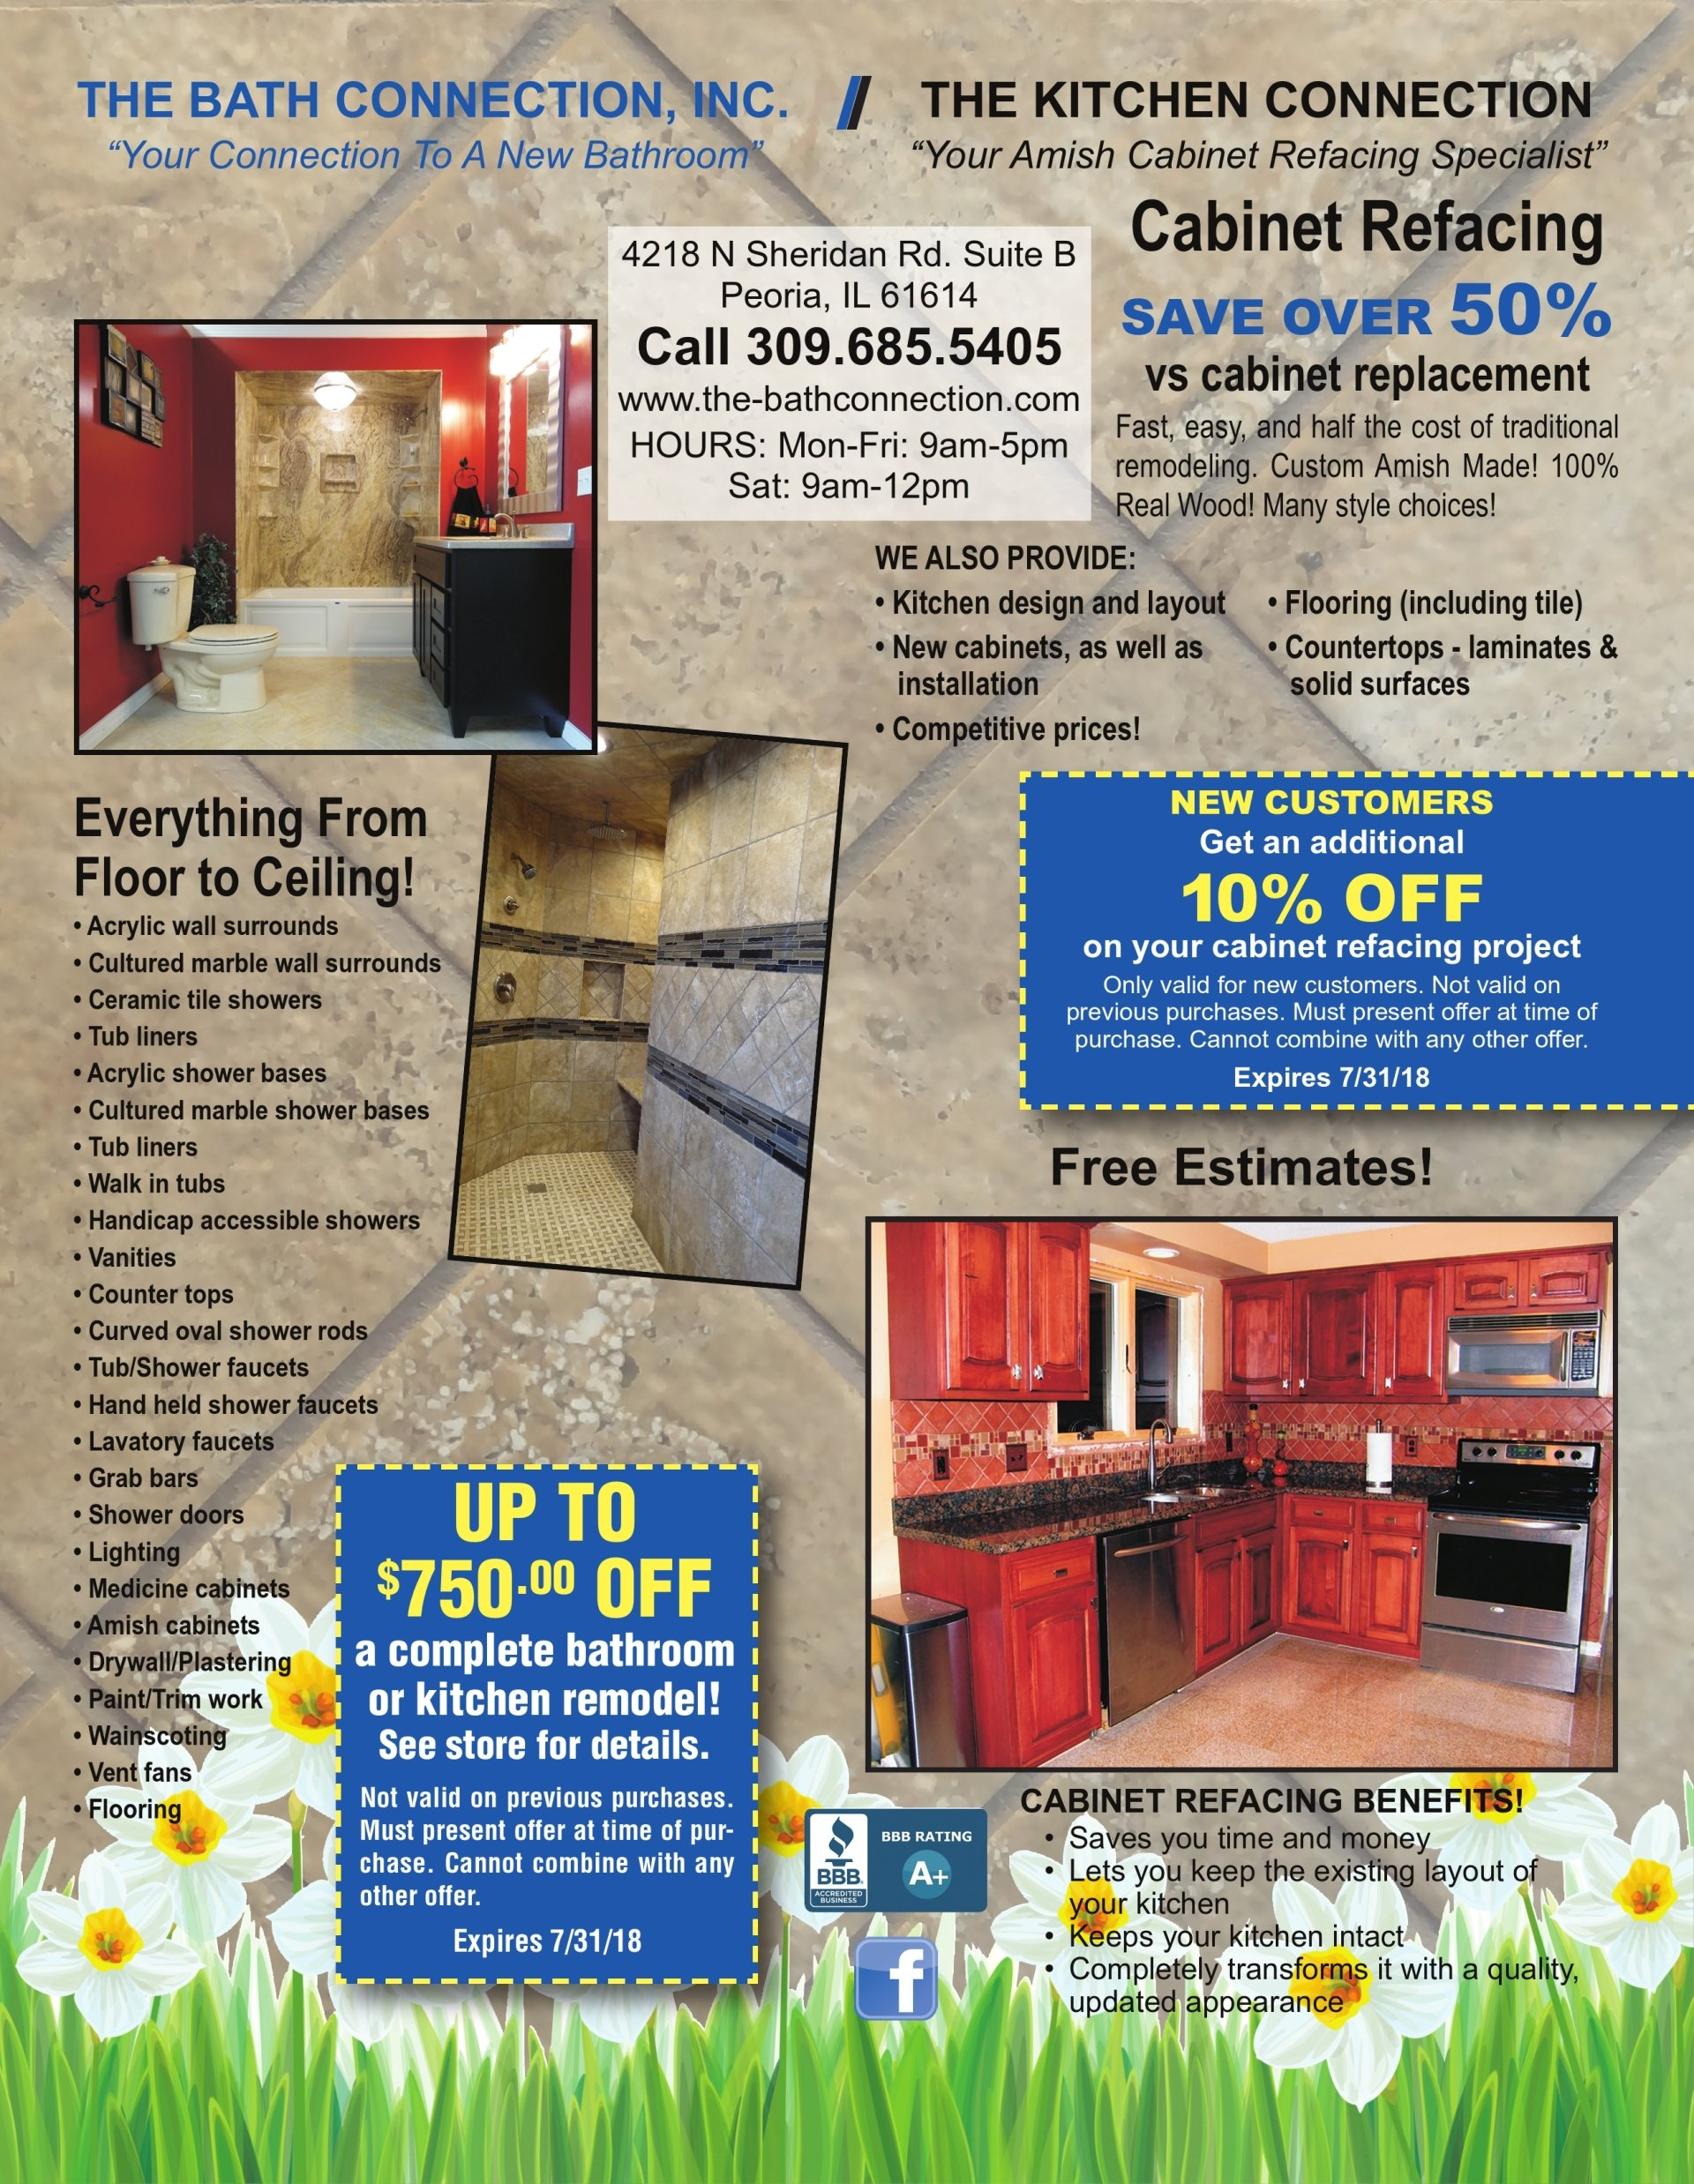 The Bath Connection discount offer coupons Peoria, IL